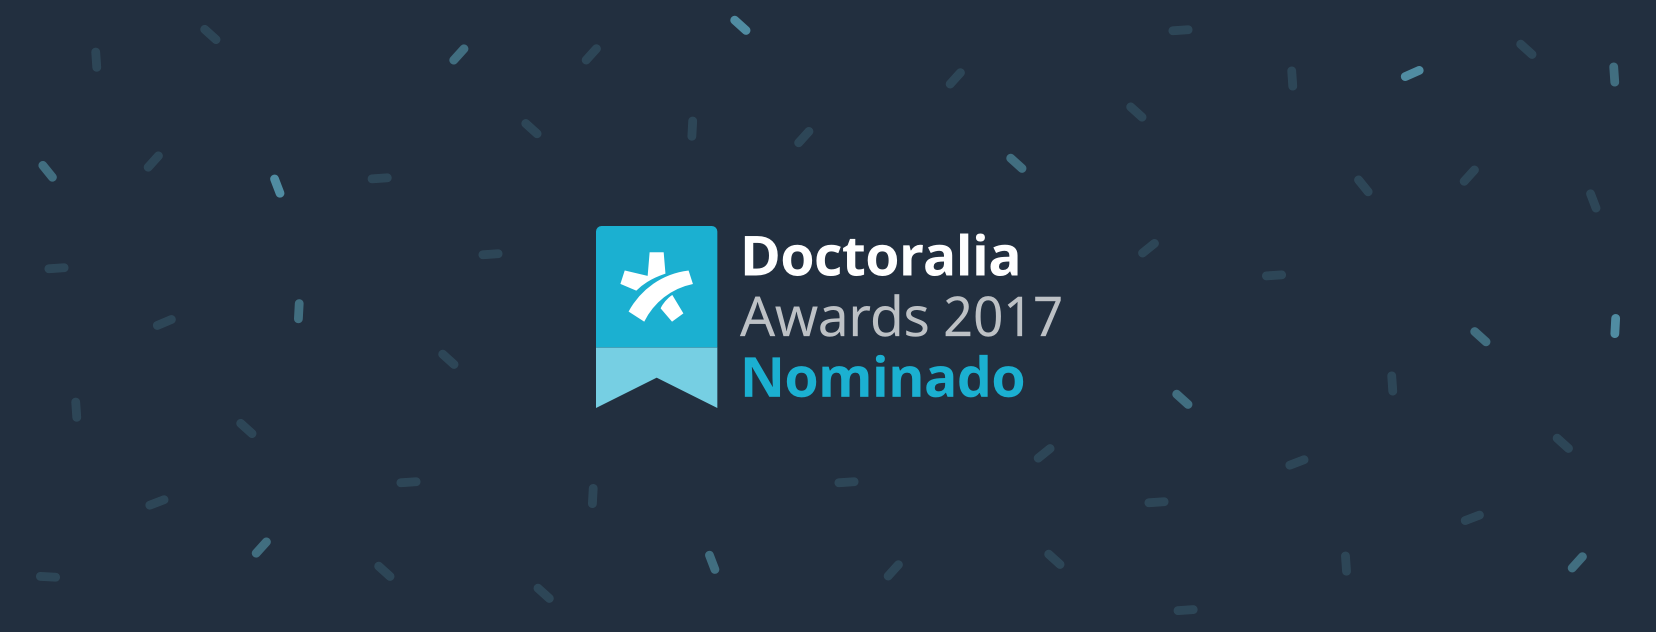 doctoralia-awards